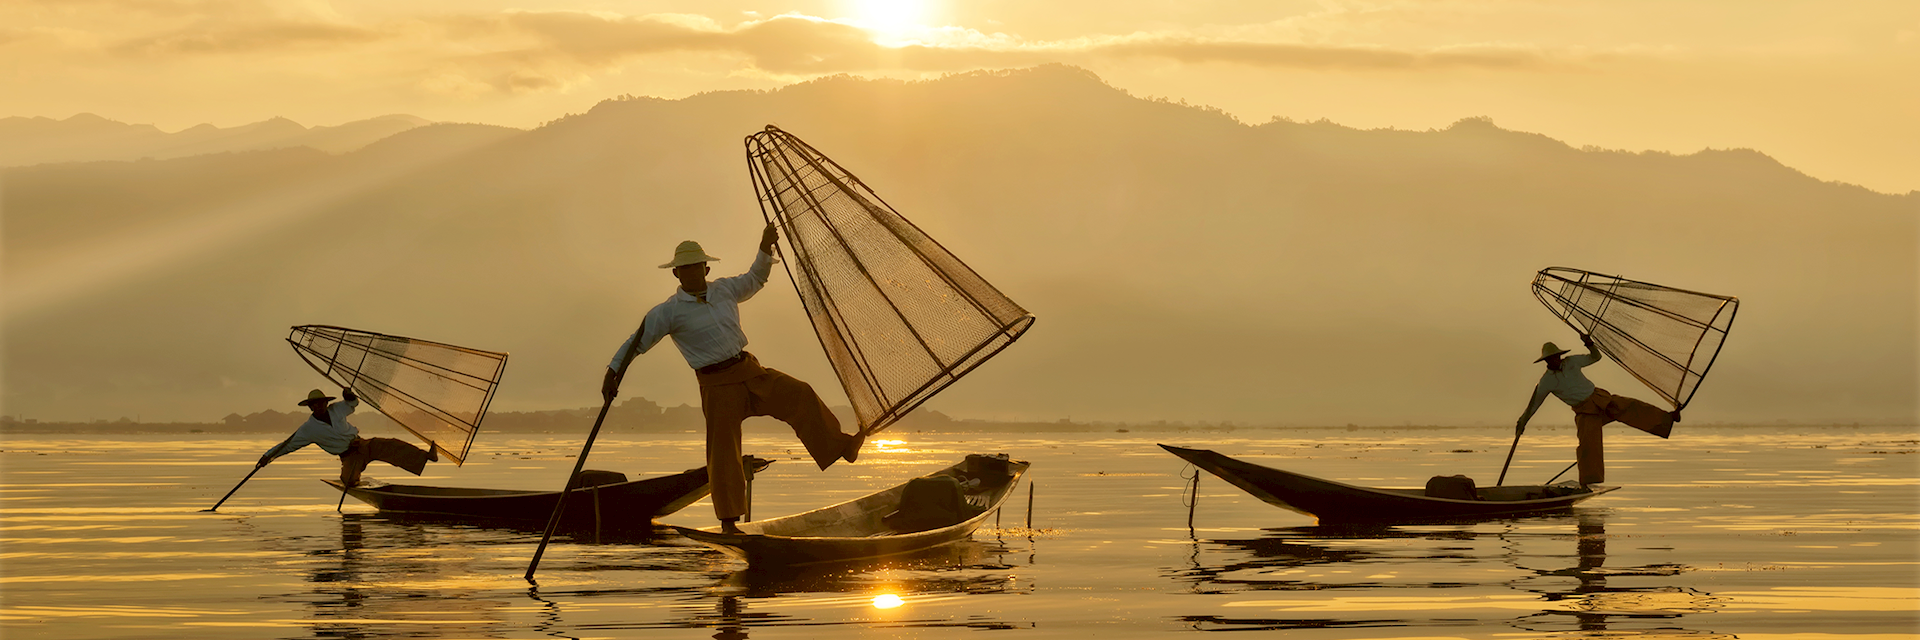 Intha fishermen at dawn, Myanmar